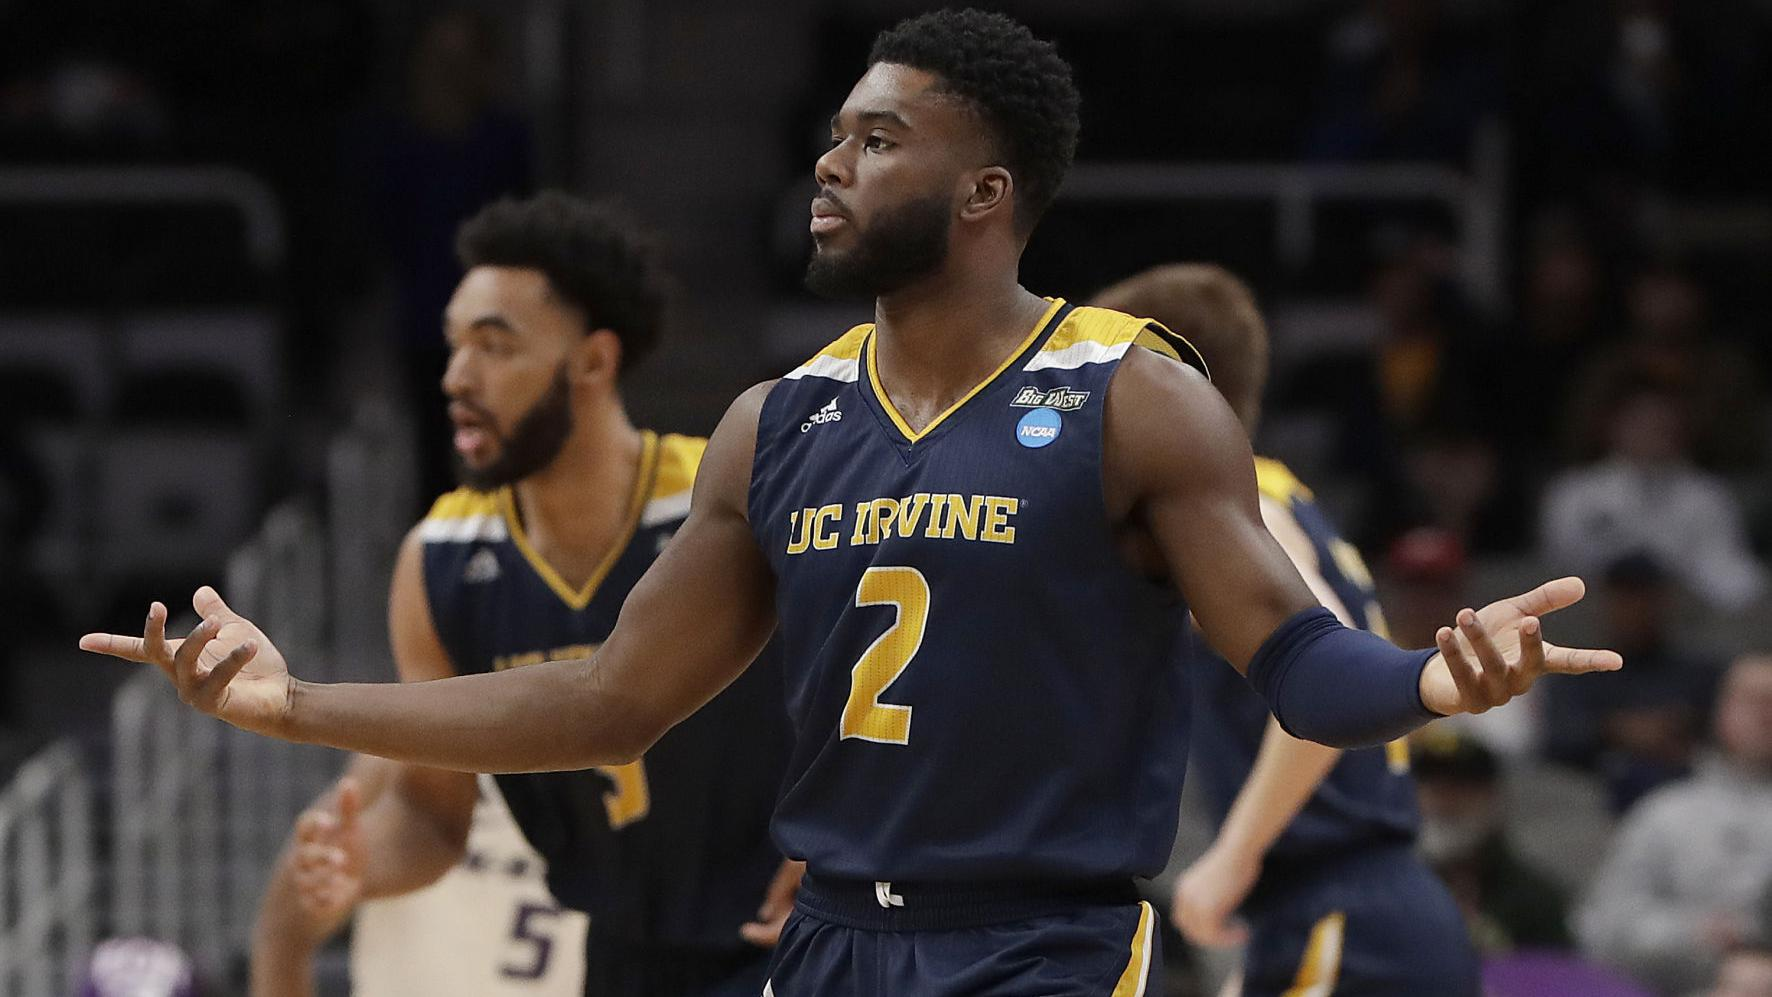 UC Irvine's Max Hazzard could bring veteran presence, shooting touch to Wildcats next season